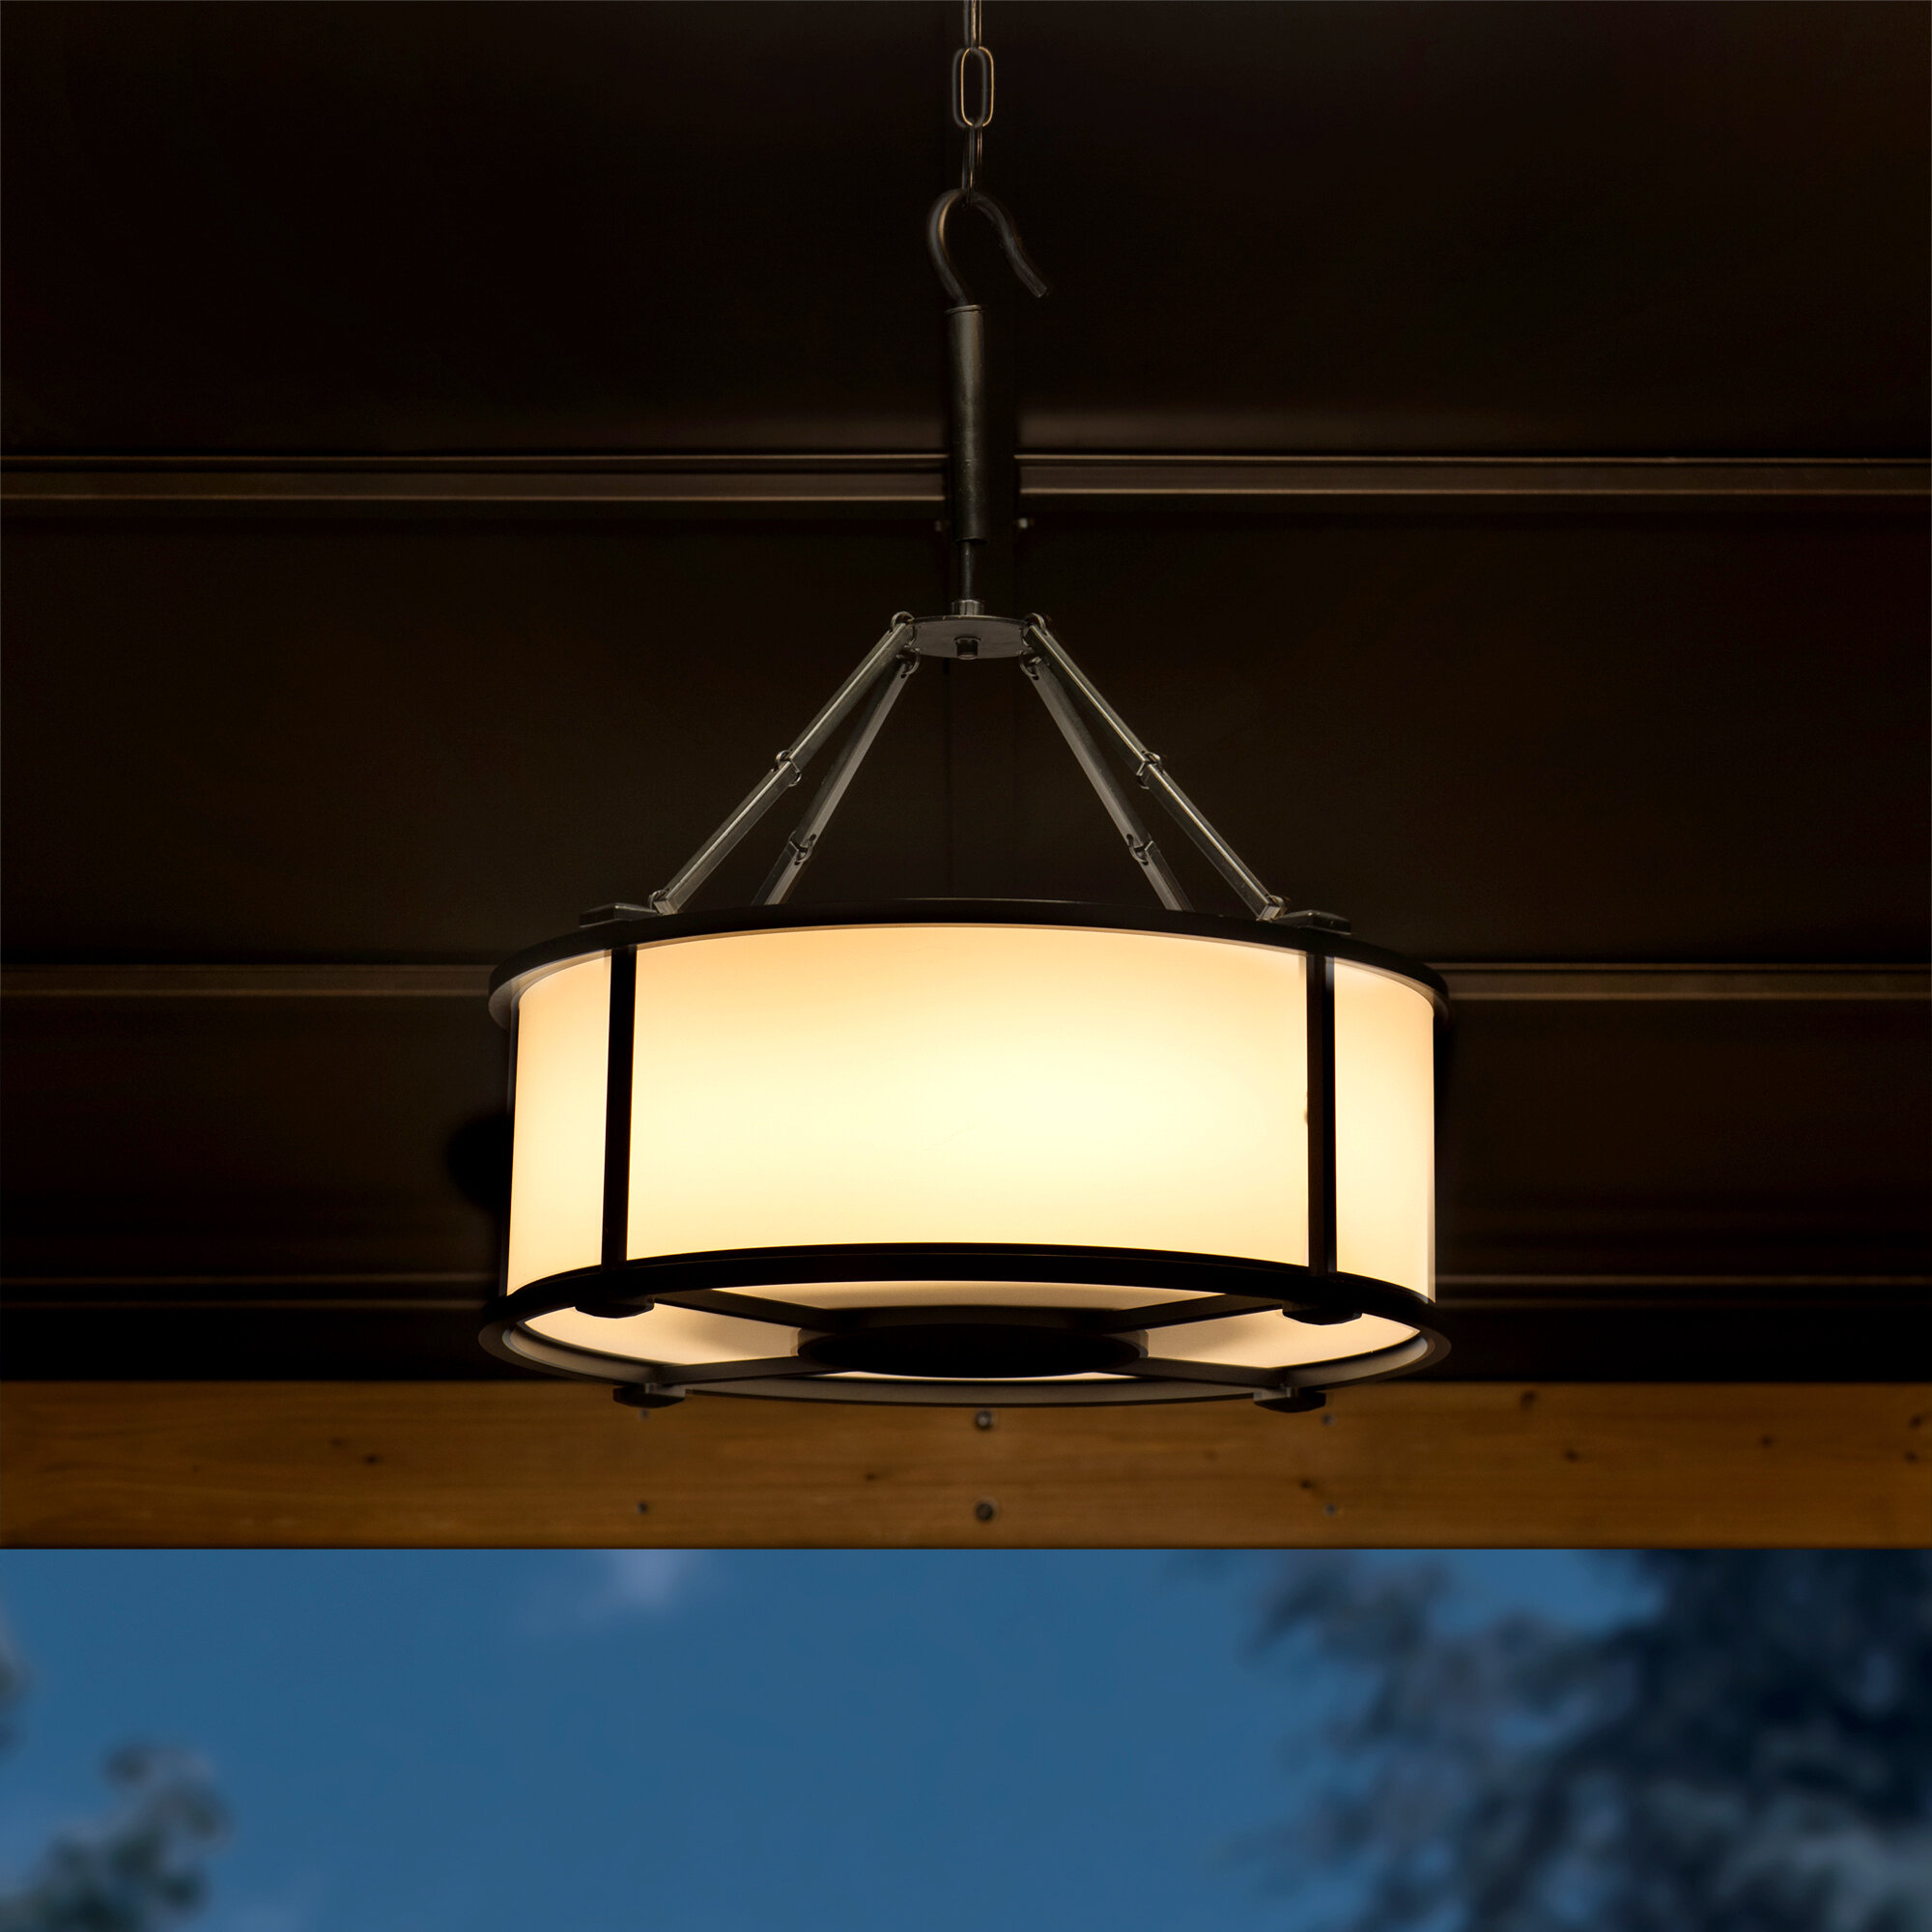 Sunjoy White Battery Powered Led Outdoor Hanging Light Reviews Wayfair